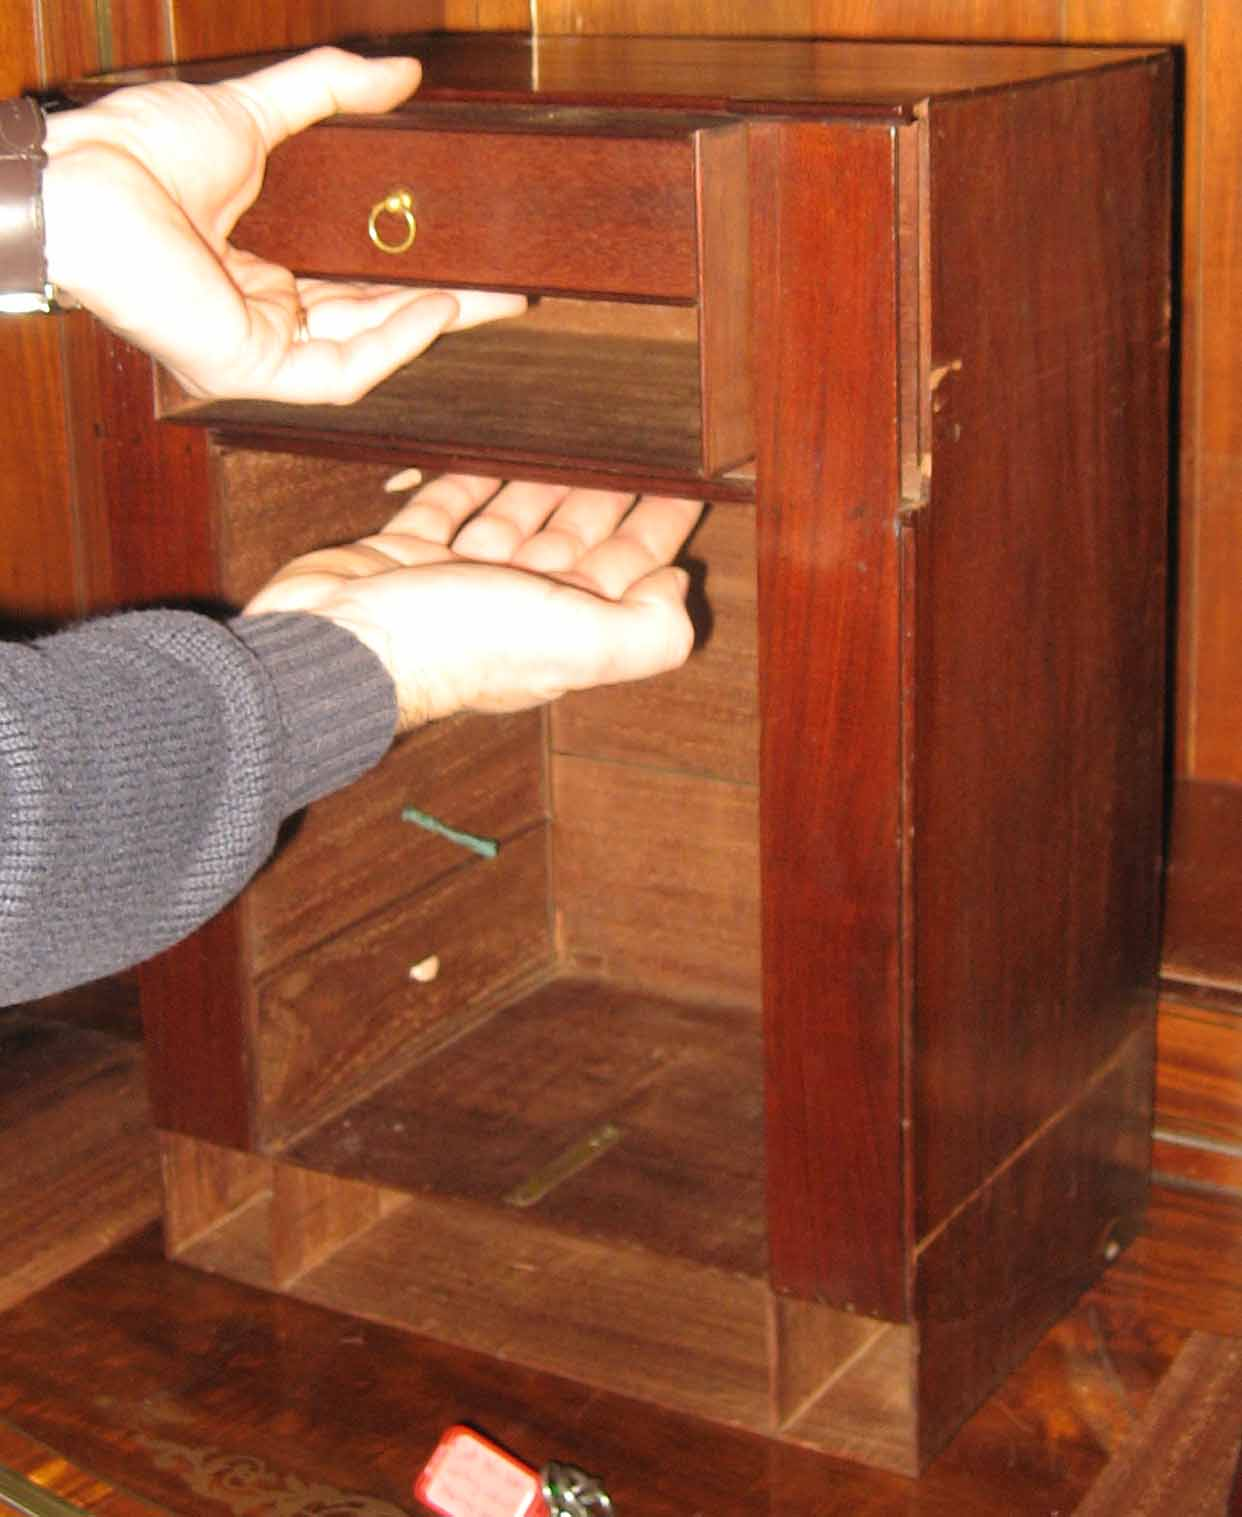 Secret compartment furniture stashvault for Furniture w hidden compartments